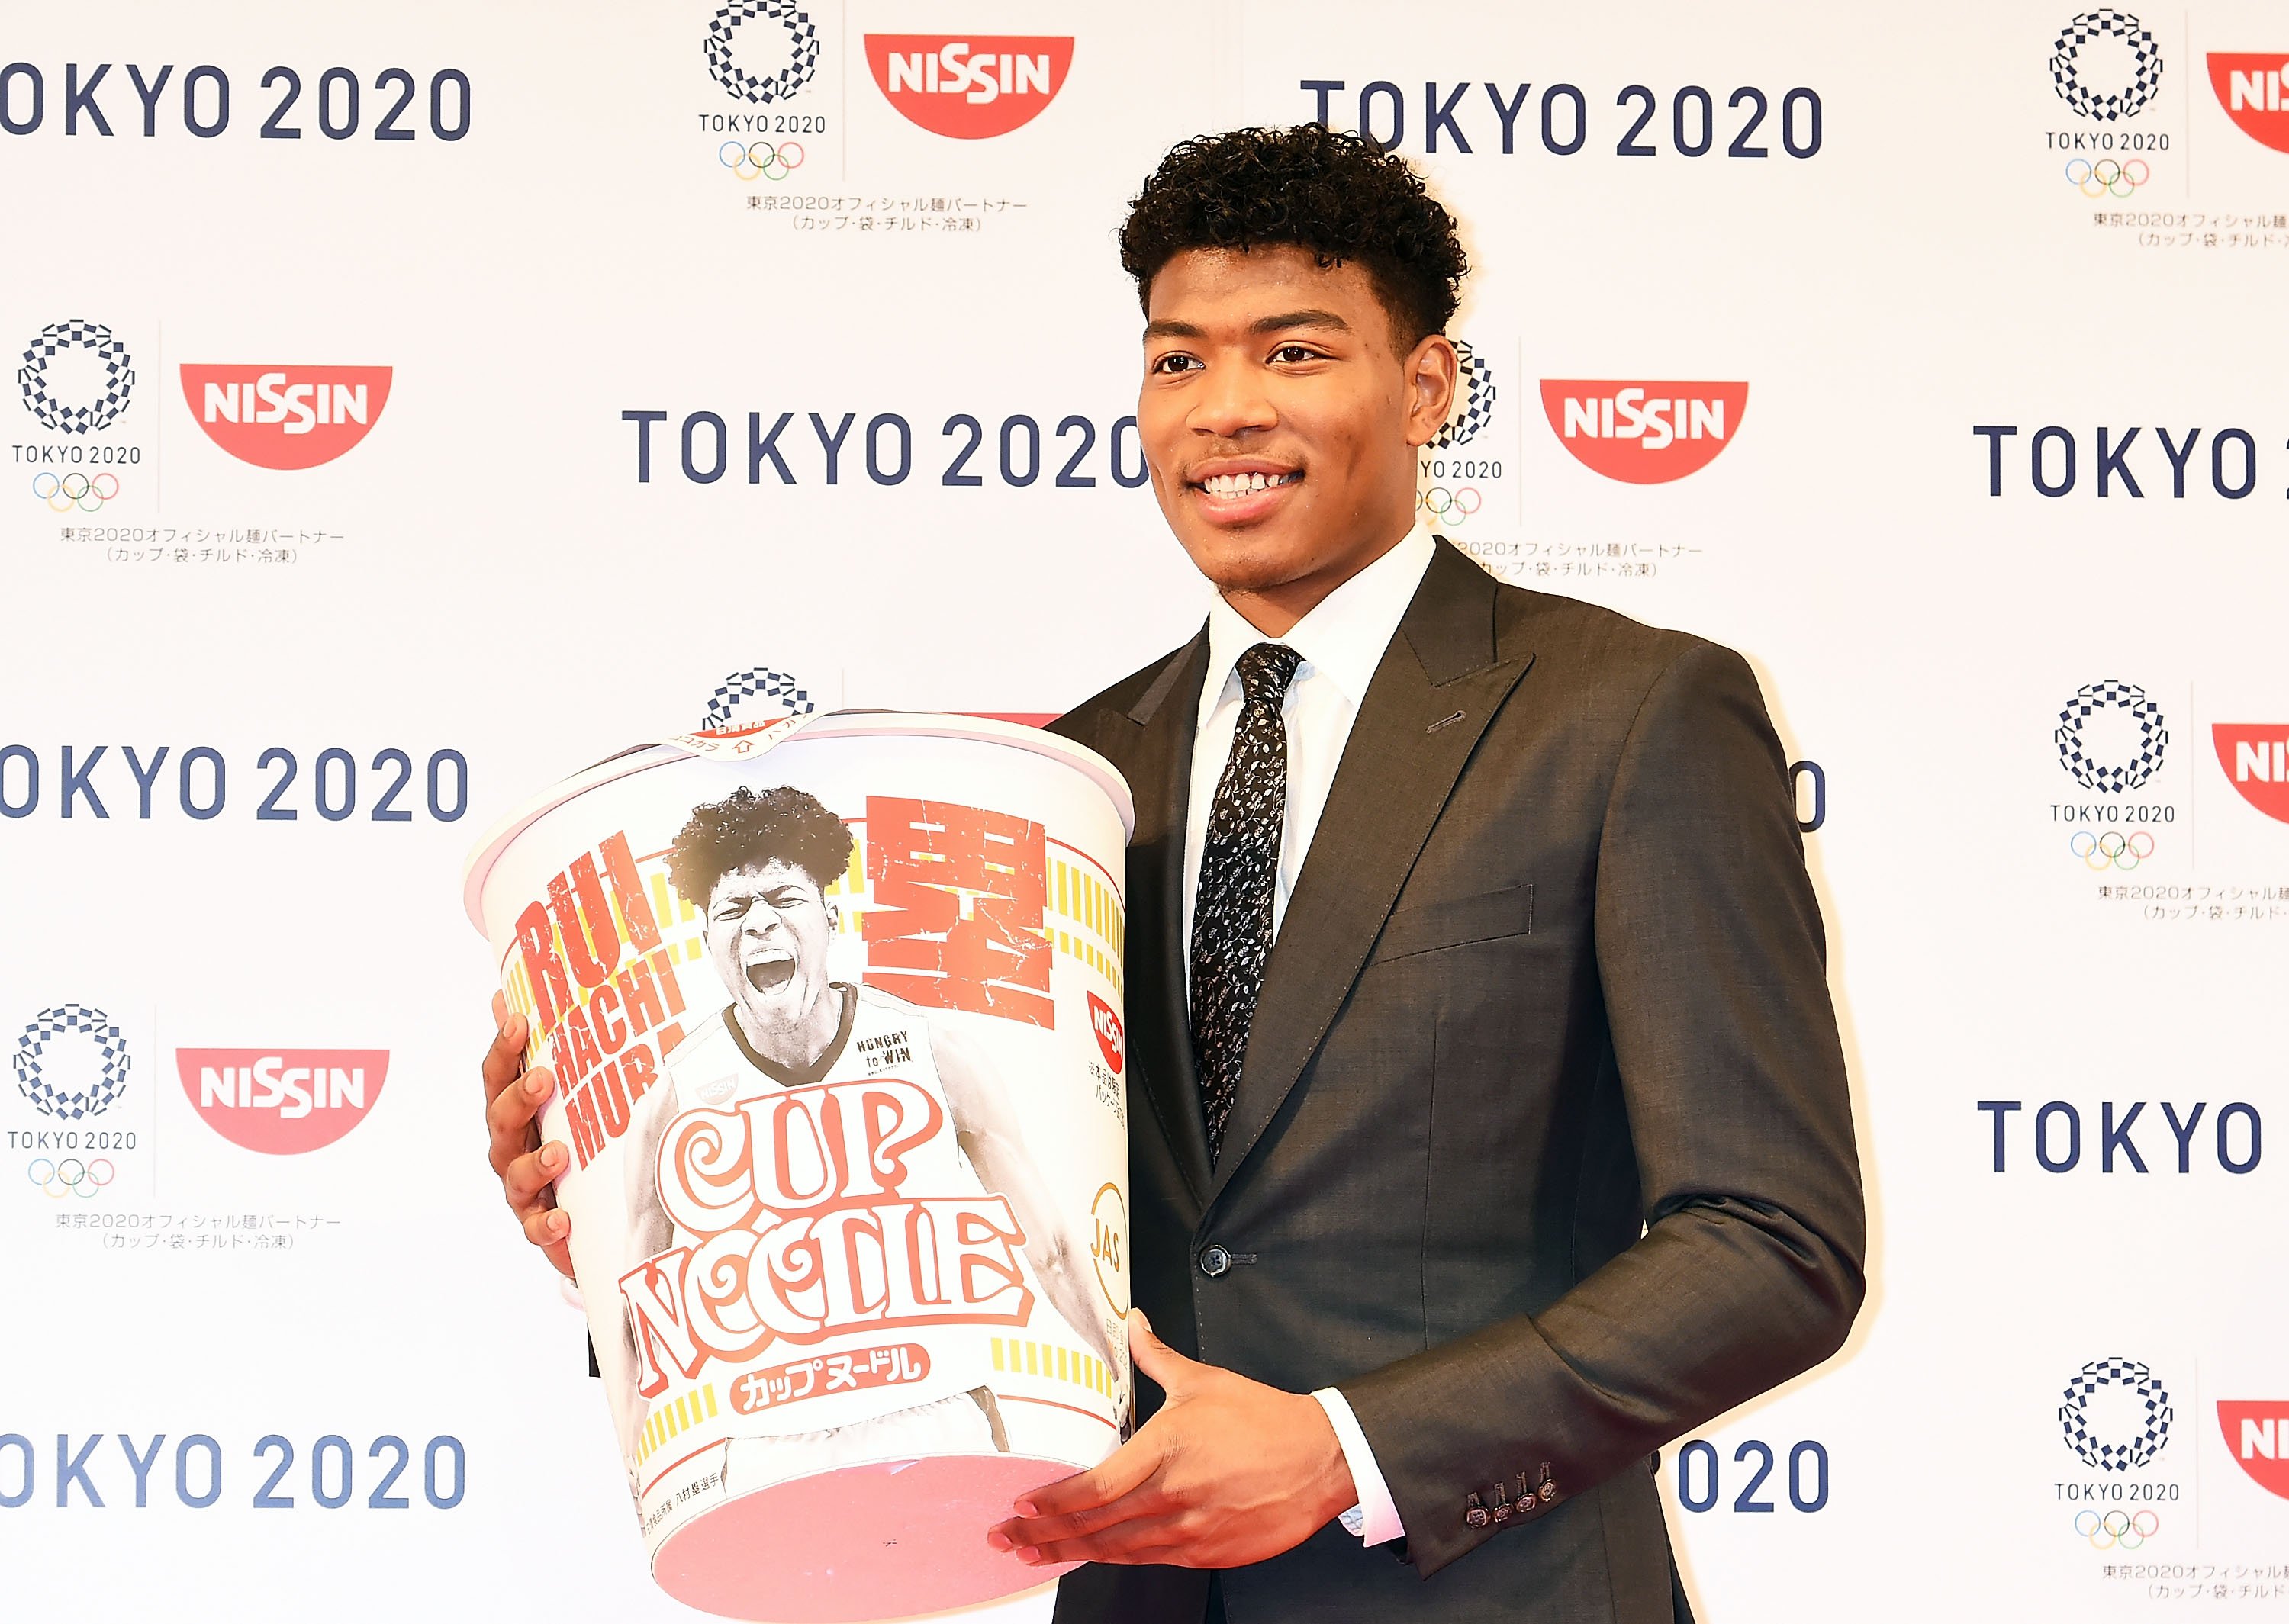 Rui Hachimura Signs Sponsorship With Nissin Foods